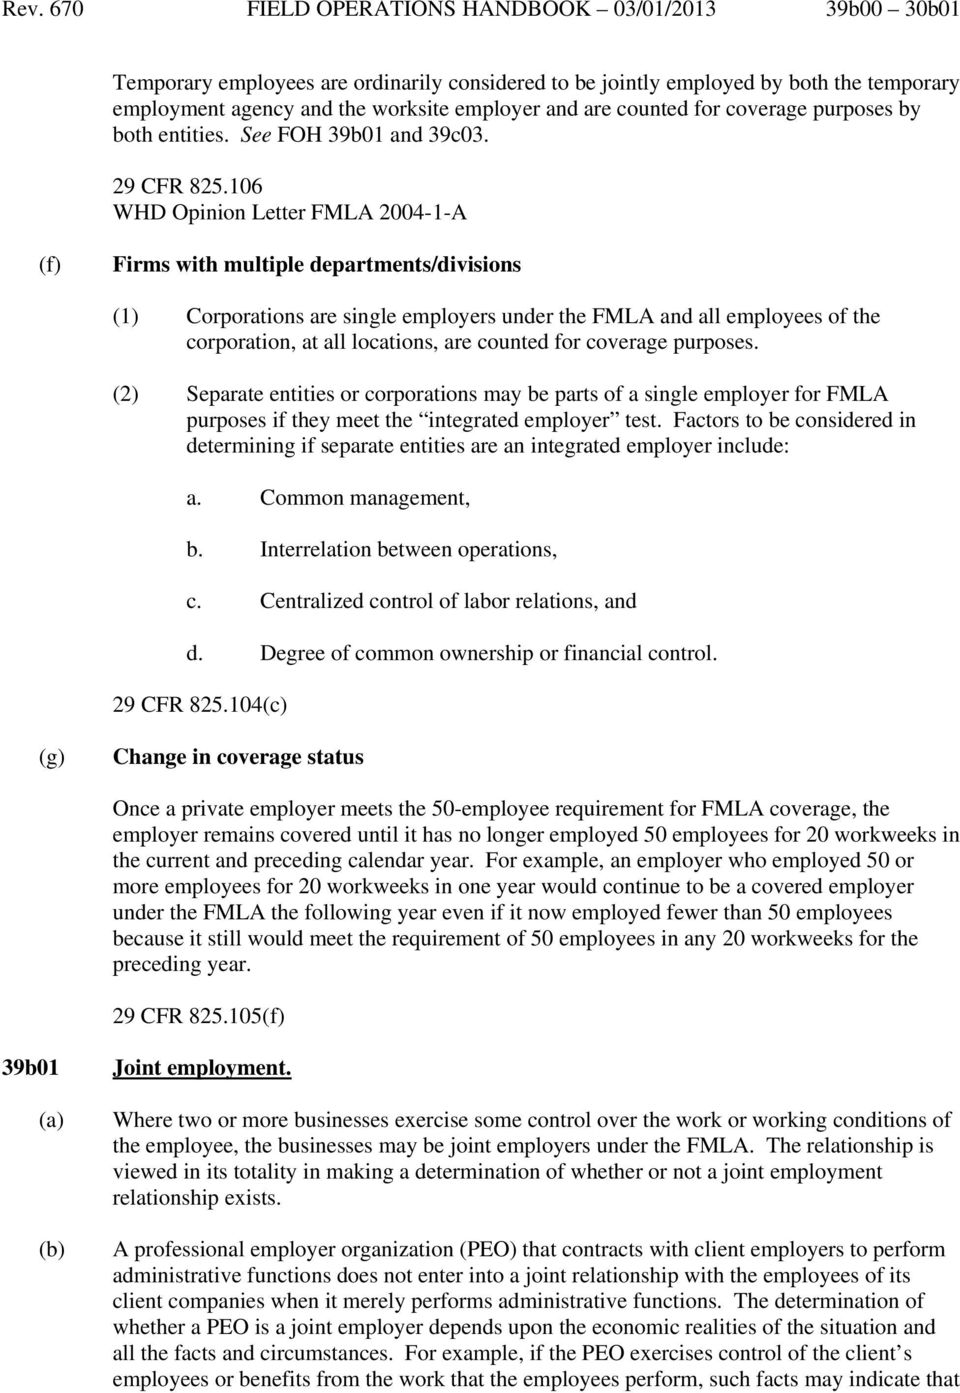 fmla and joint employment relationship